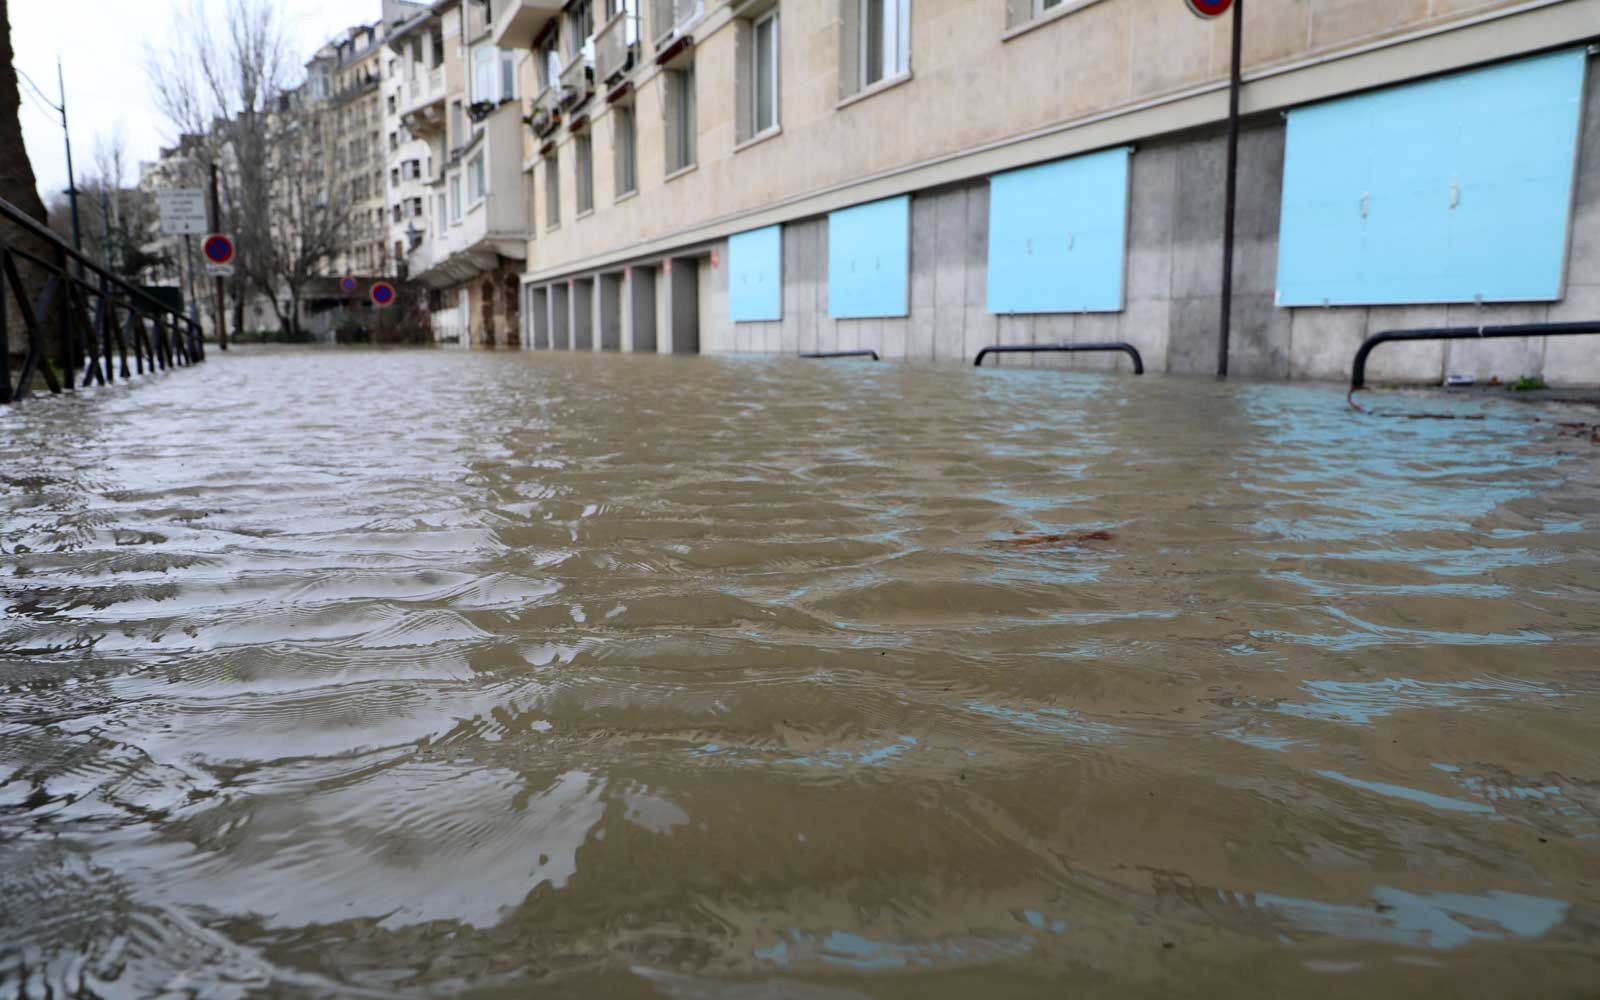 flooded pavement after the River Seine burst its banks in Paris on January 24, 2018